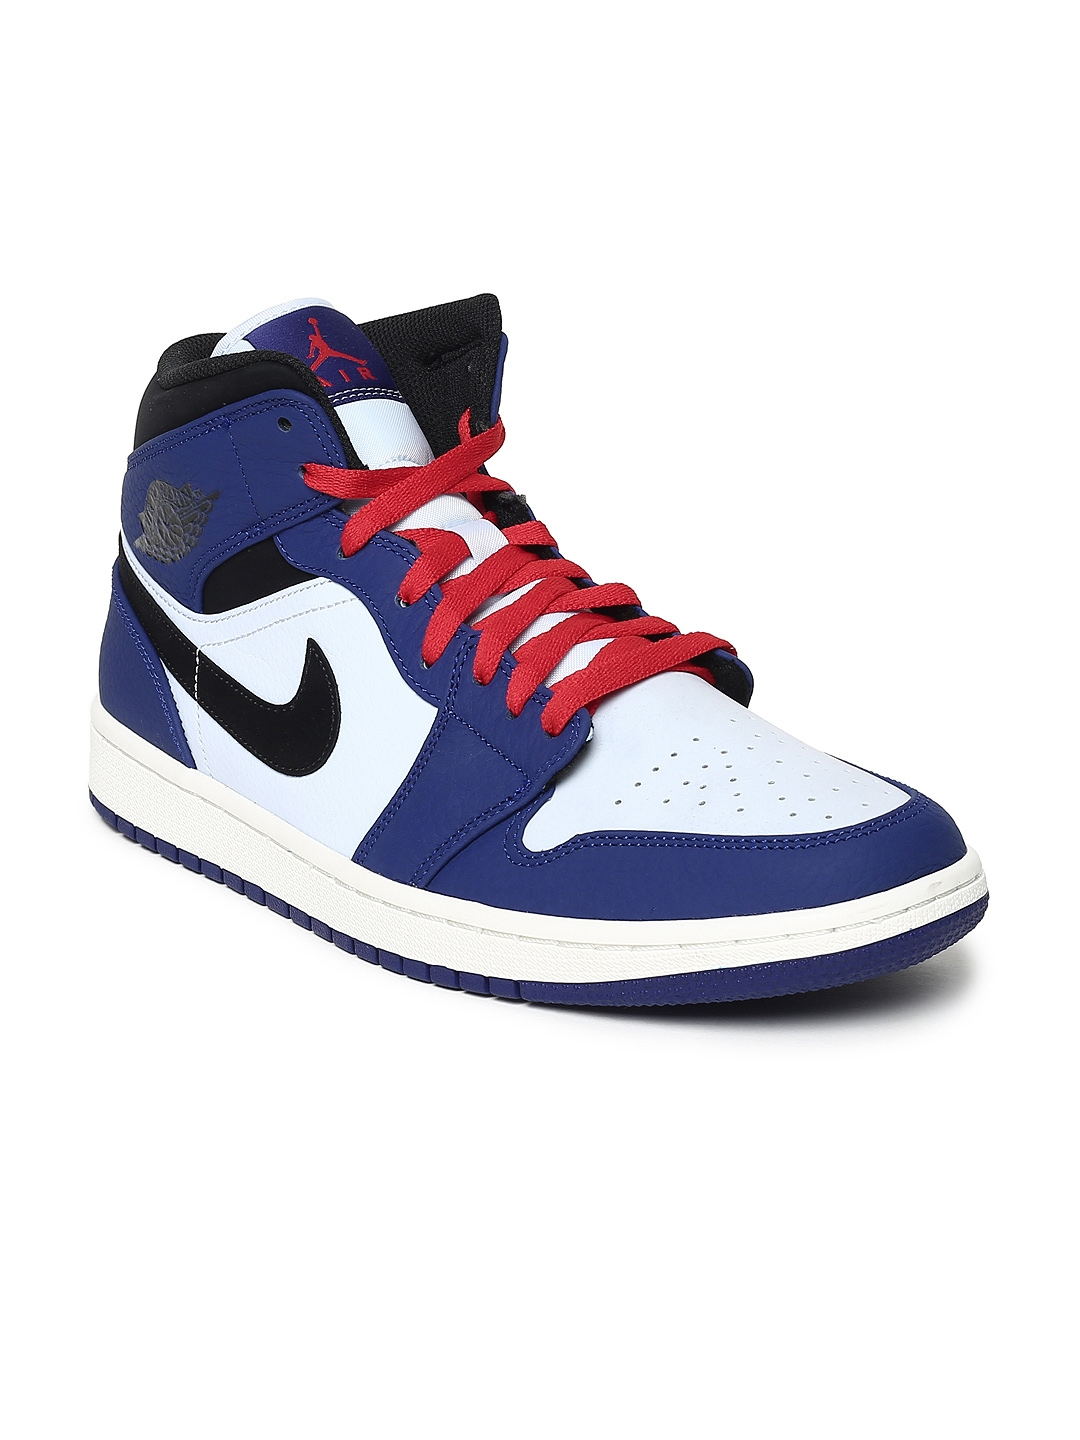 9e11a2a04f6f8d Buy Nike Men Blue Air Jordan 1 Mid SE Leather Basketball Shoes ...